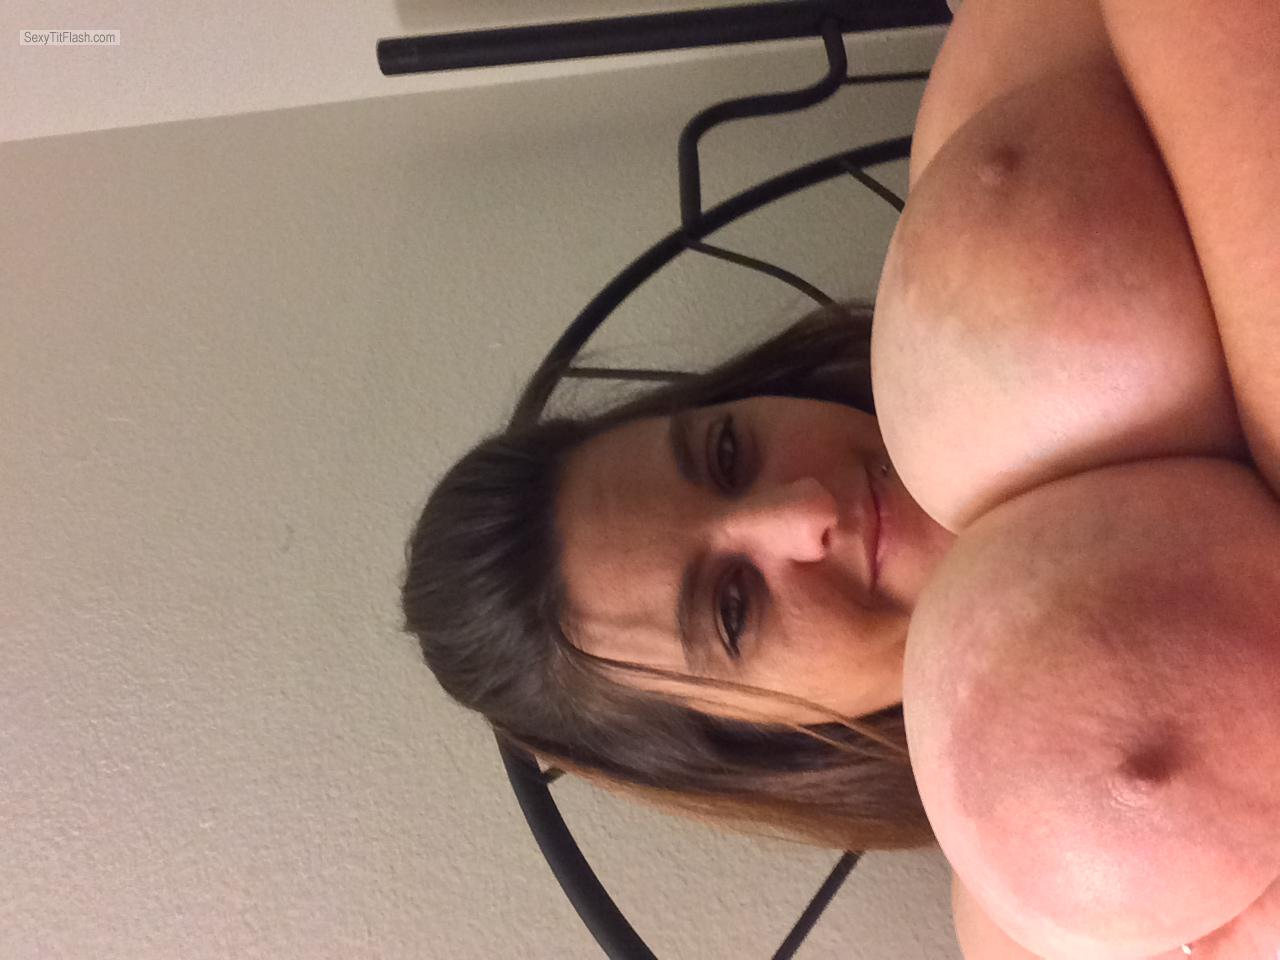 My Big Tits Topless Selfie by Lulu1507